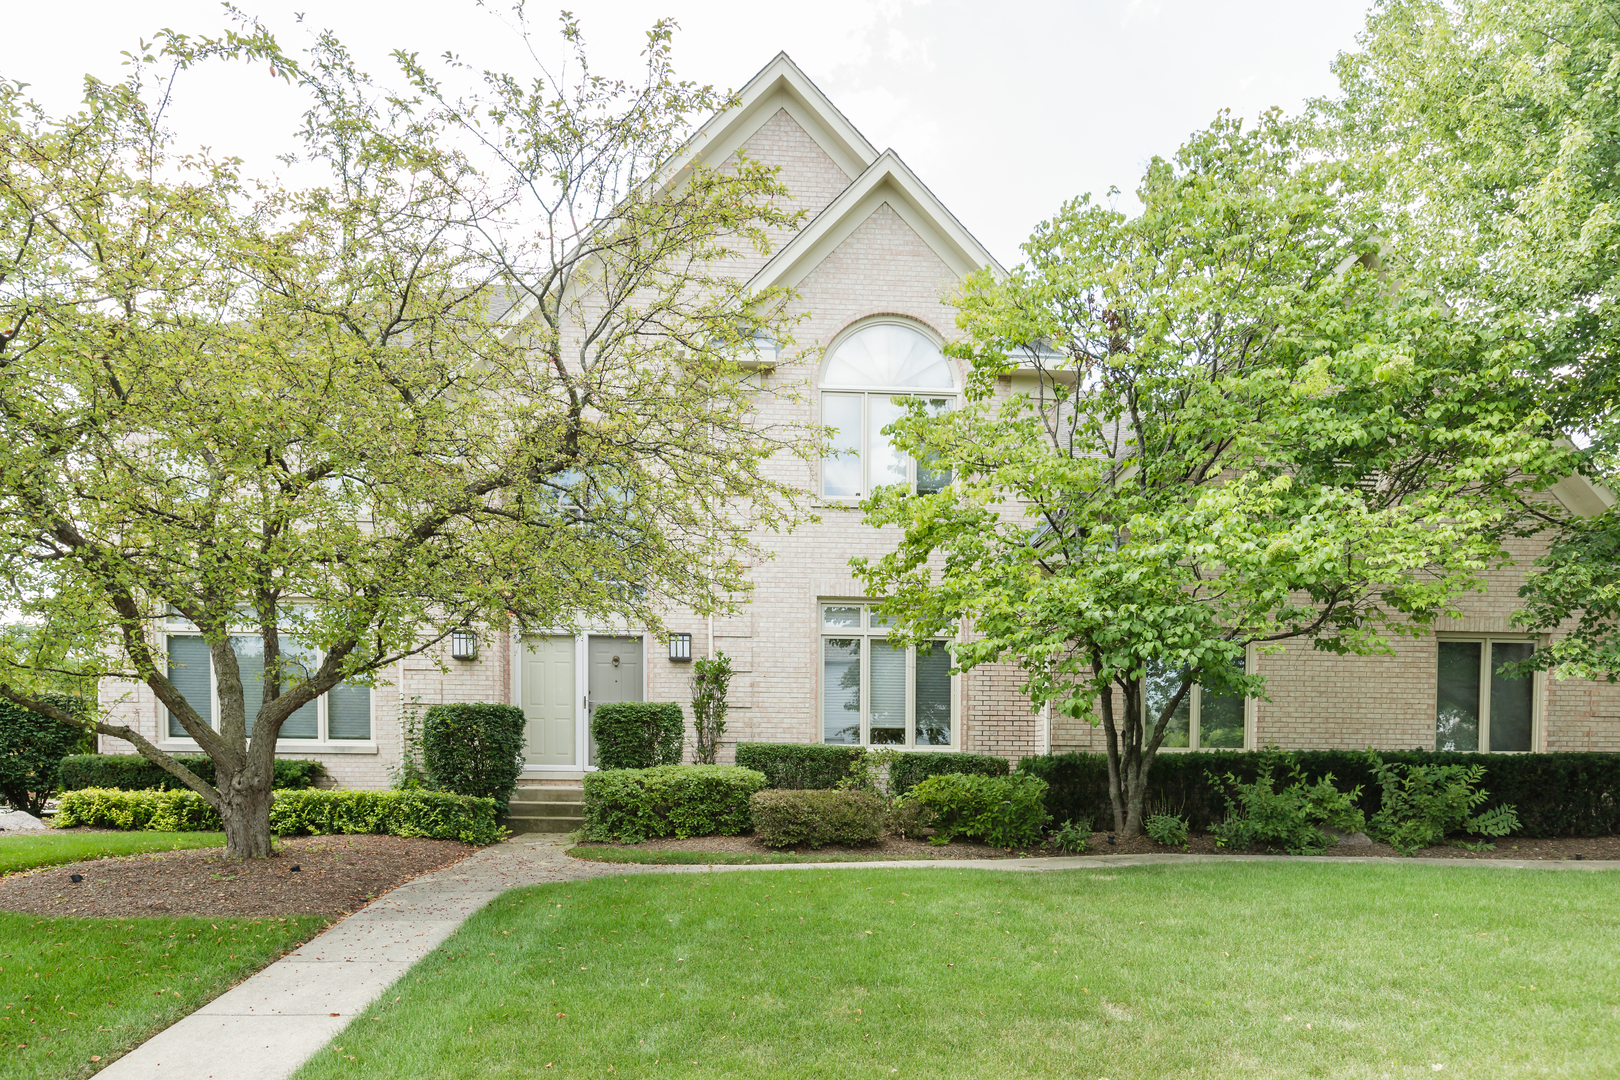 2980 KINGSTON Drive, Buffalo Grove in Lake County, IL 60089 Home for Sale